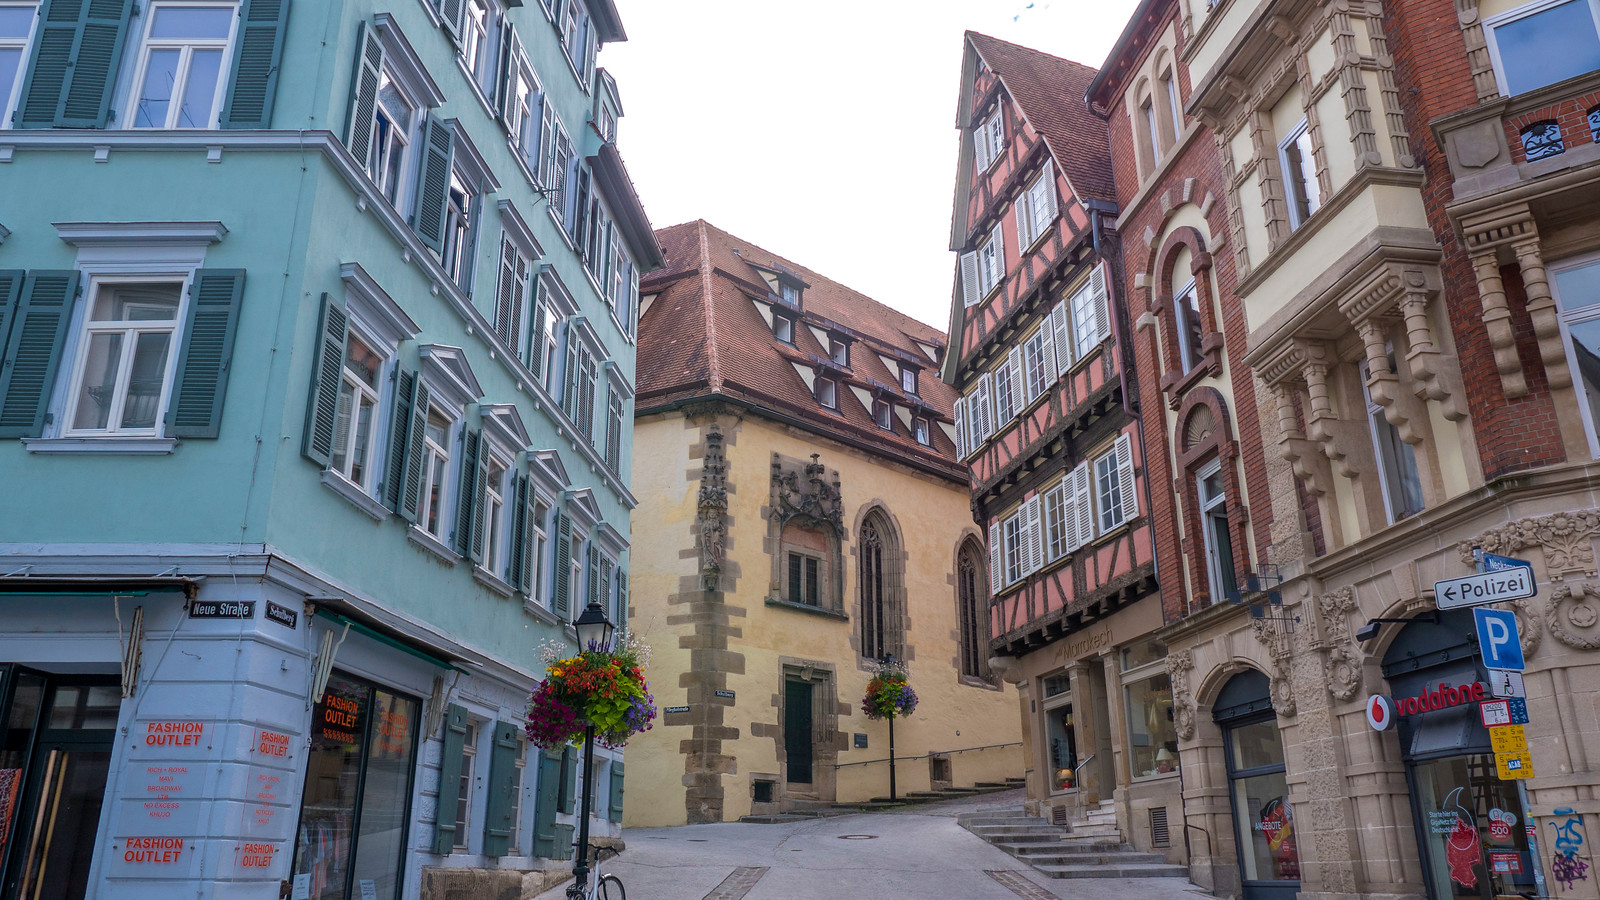 Cobblestone streets and colourful houses of Tubingen. Things to do in Tubingen Germany.